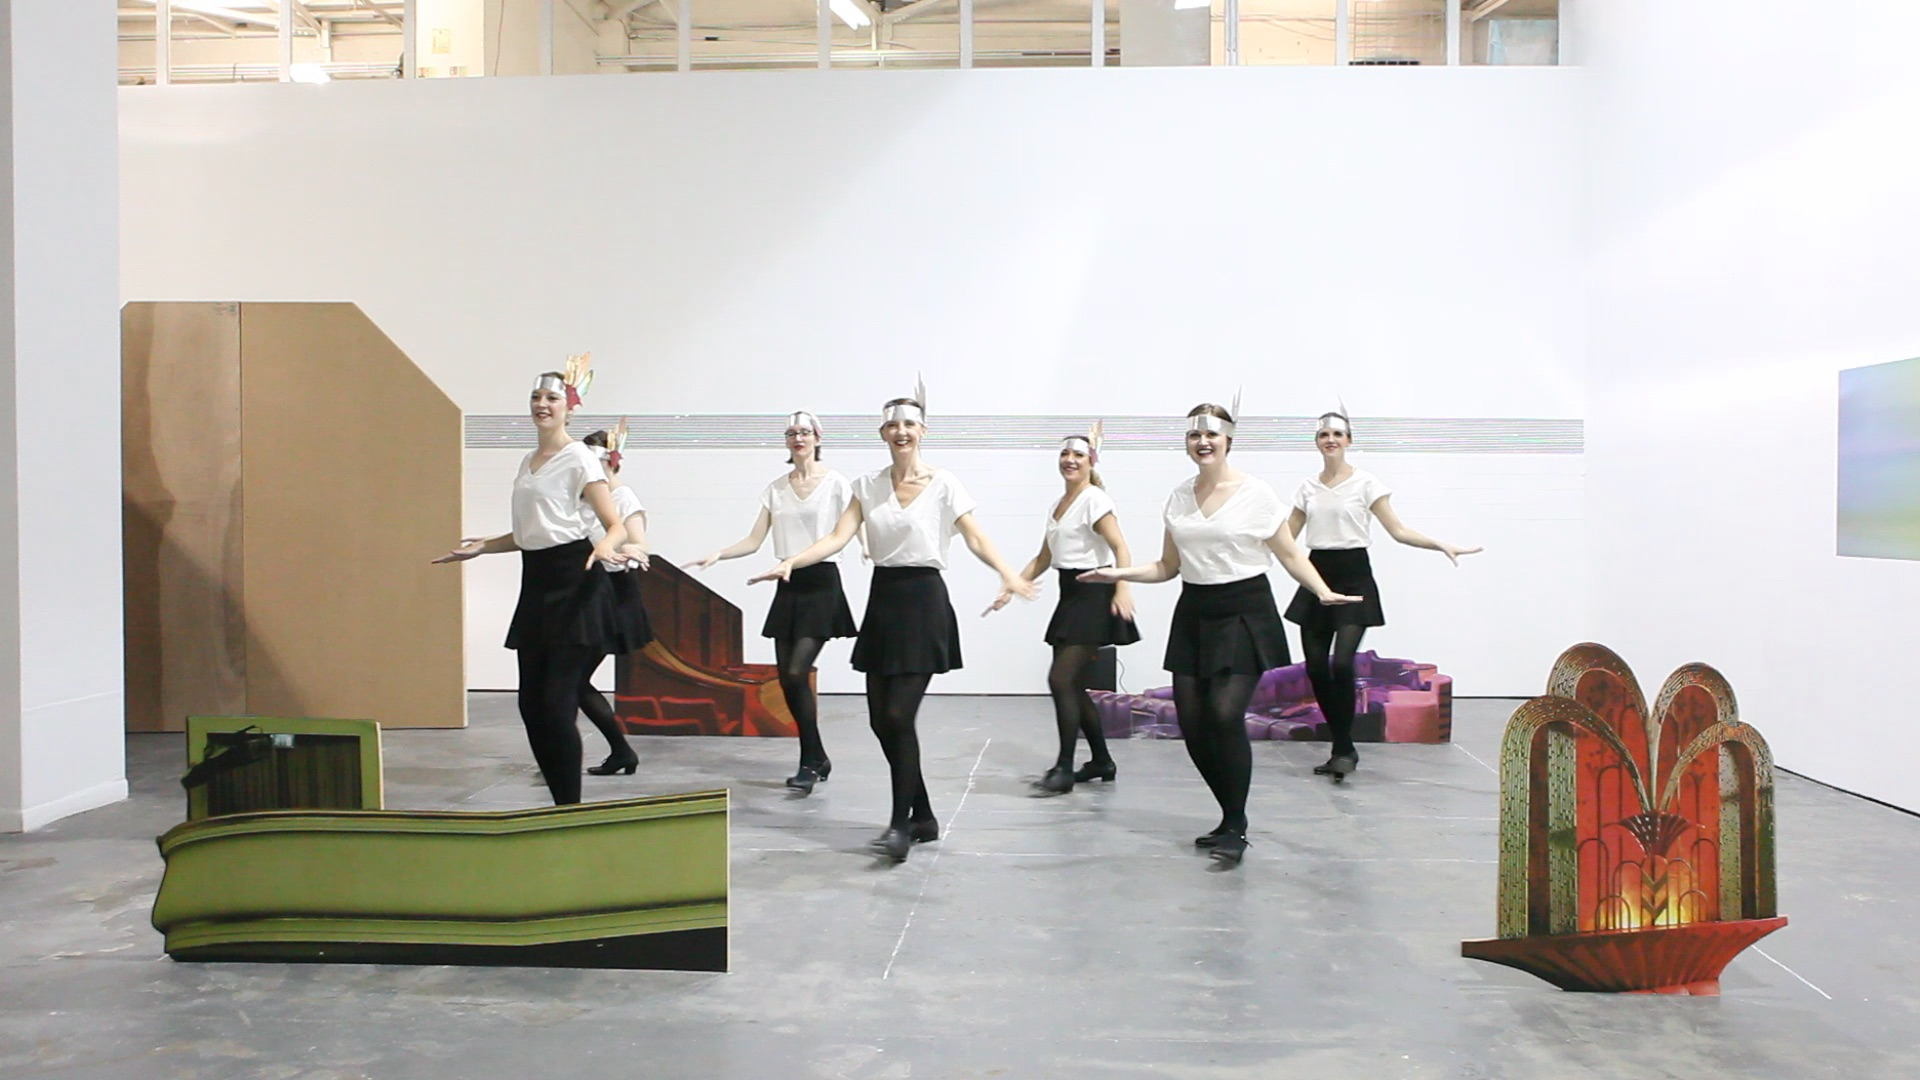 Tap Performance For Gallery with Many Dancers